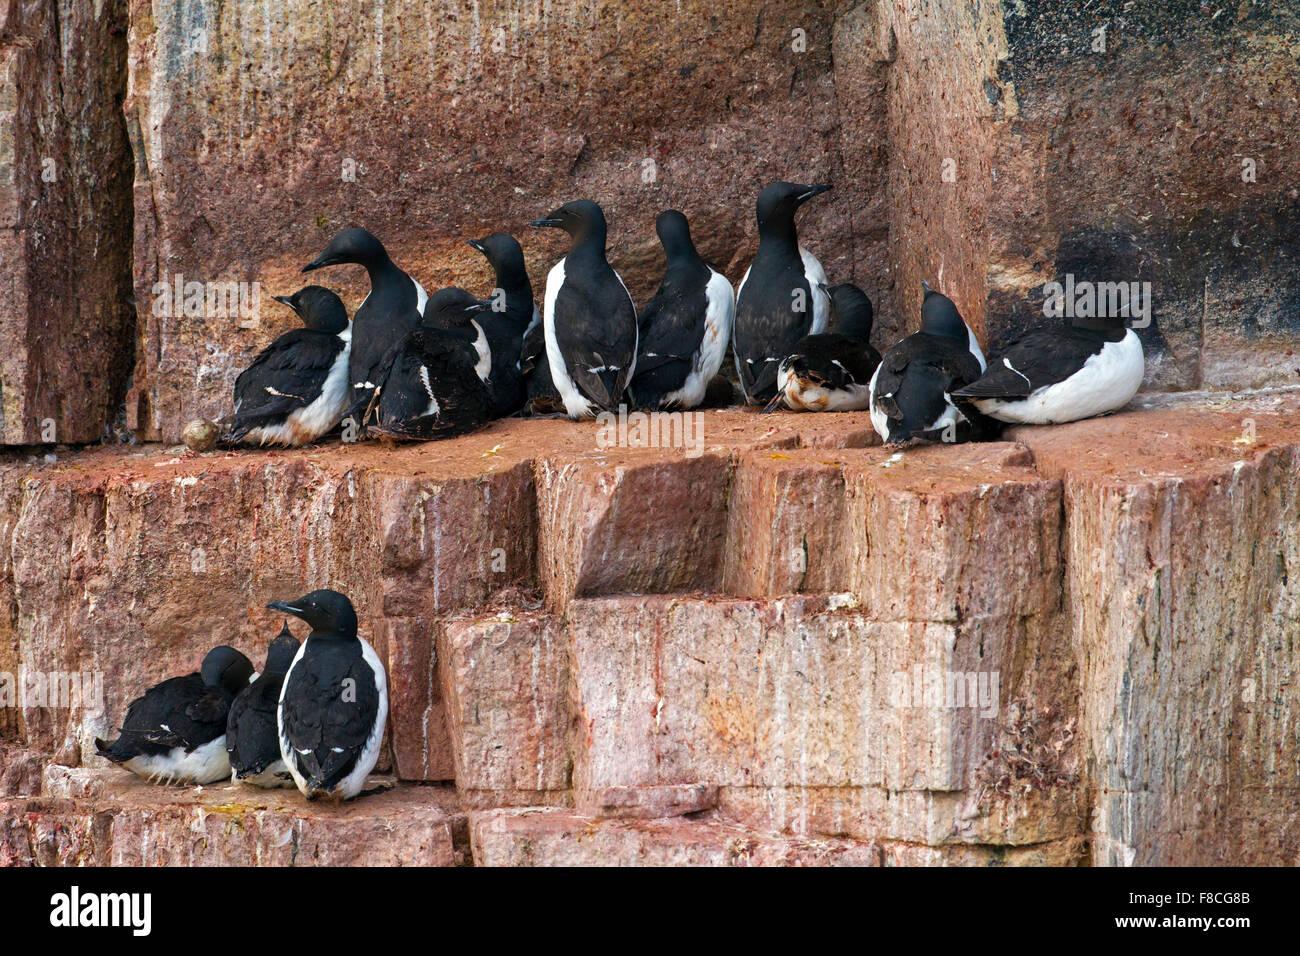 Thick-billed murres / Brünnich's guillemots (Uria lomvia) breeding on rock ledge of sea cliff in seabird - Stock Image